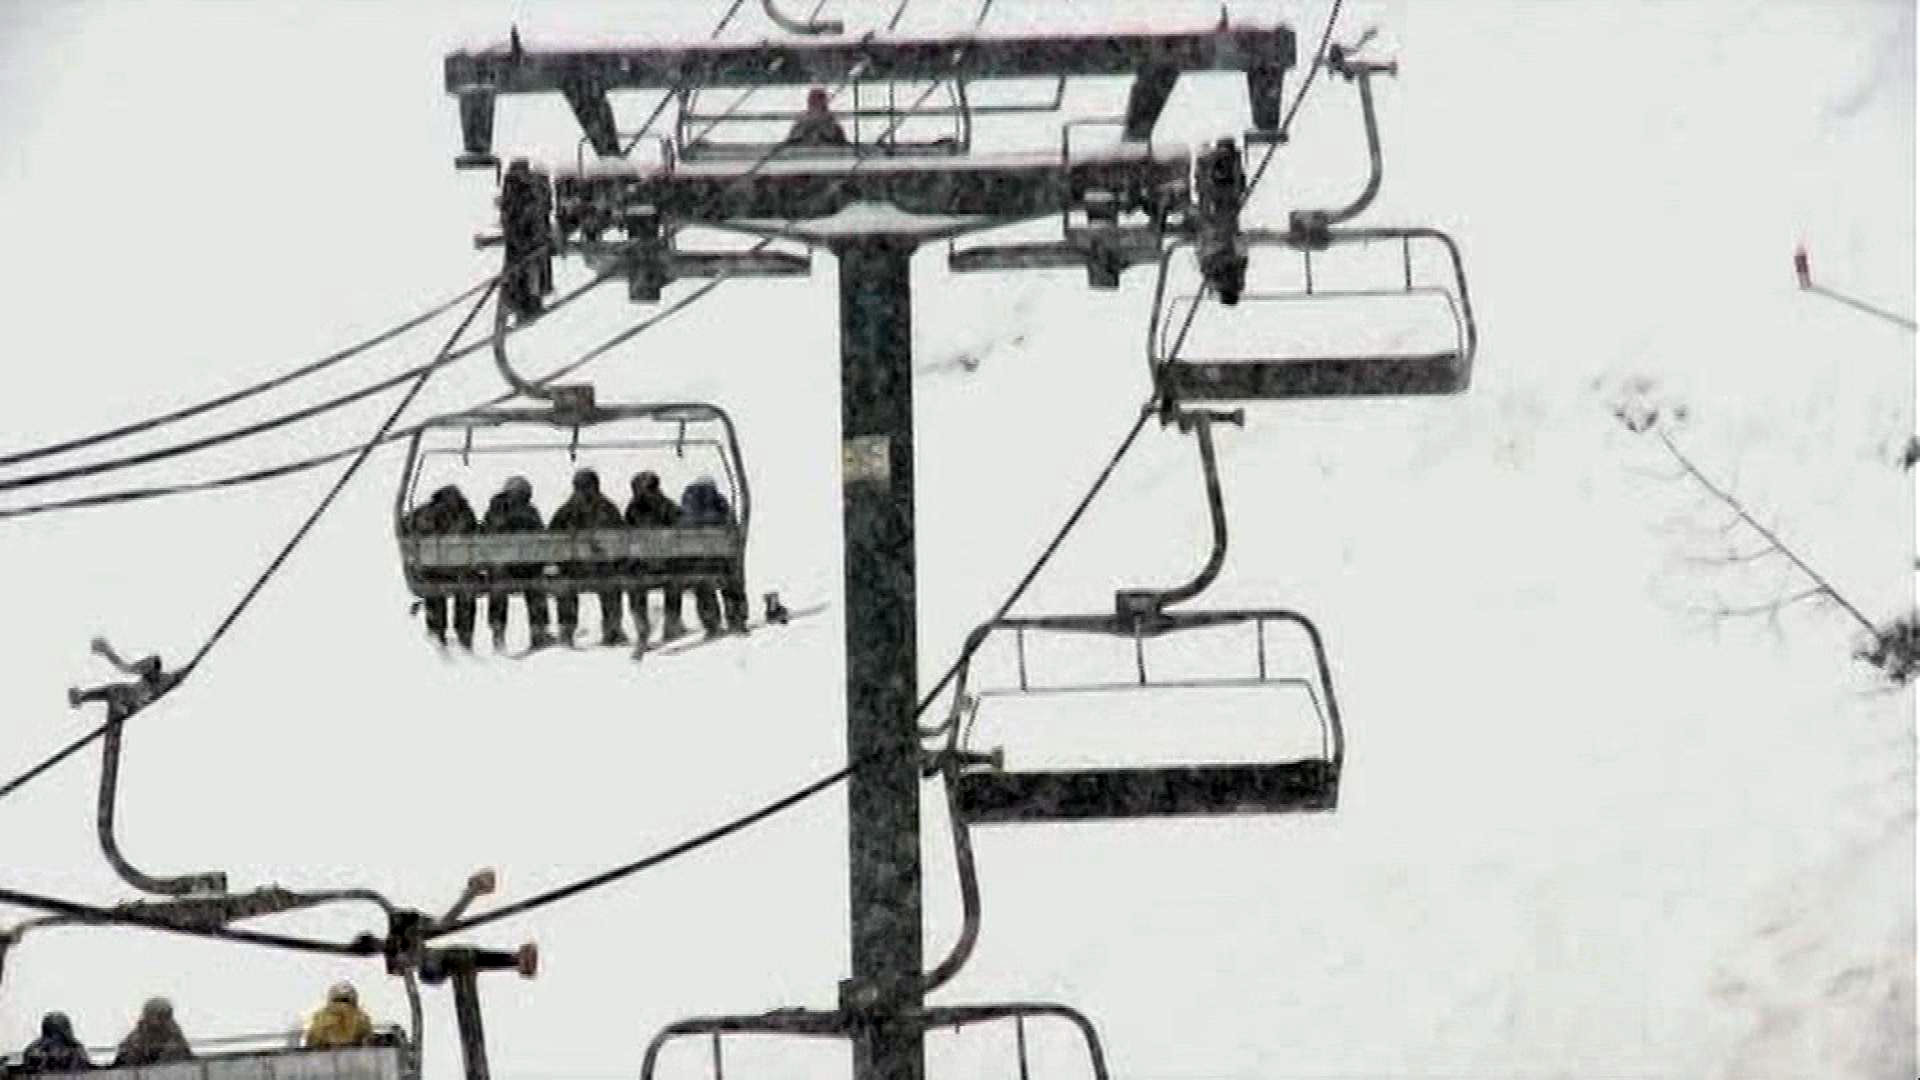 Durango Mountain Resort on Saturday (credit: CBS)